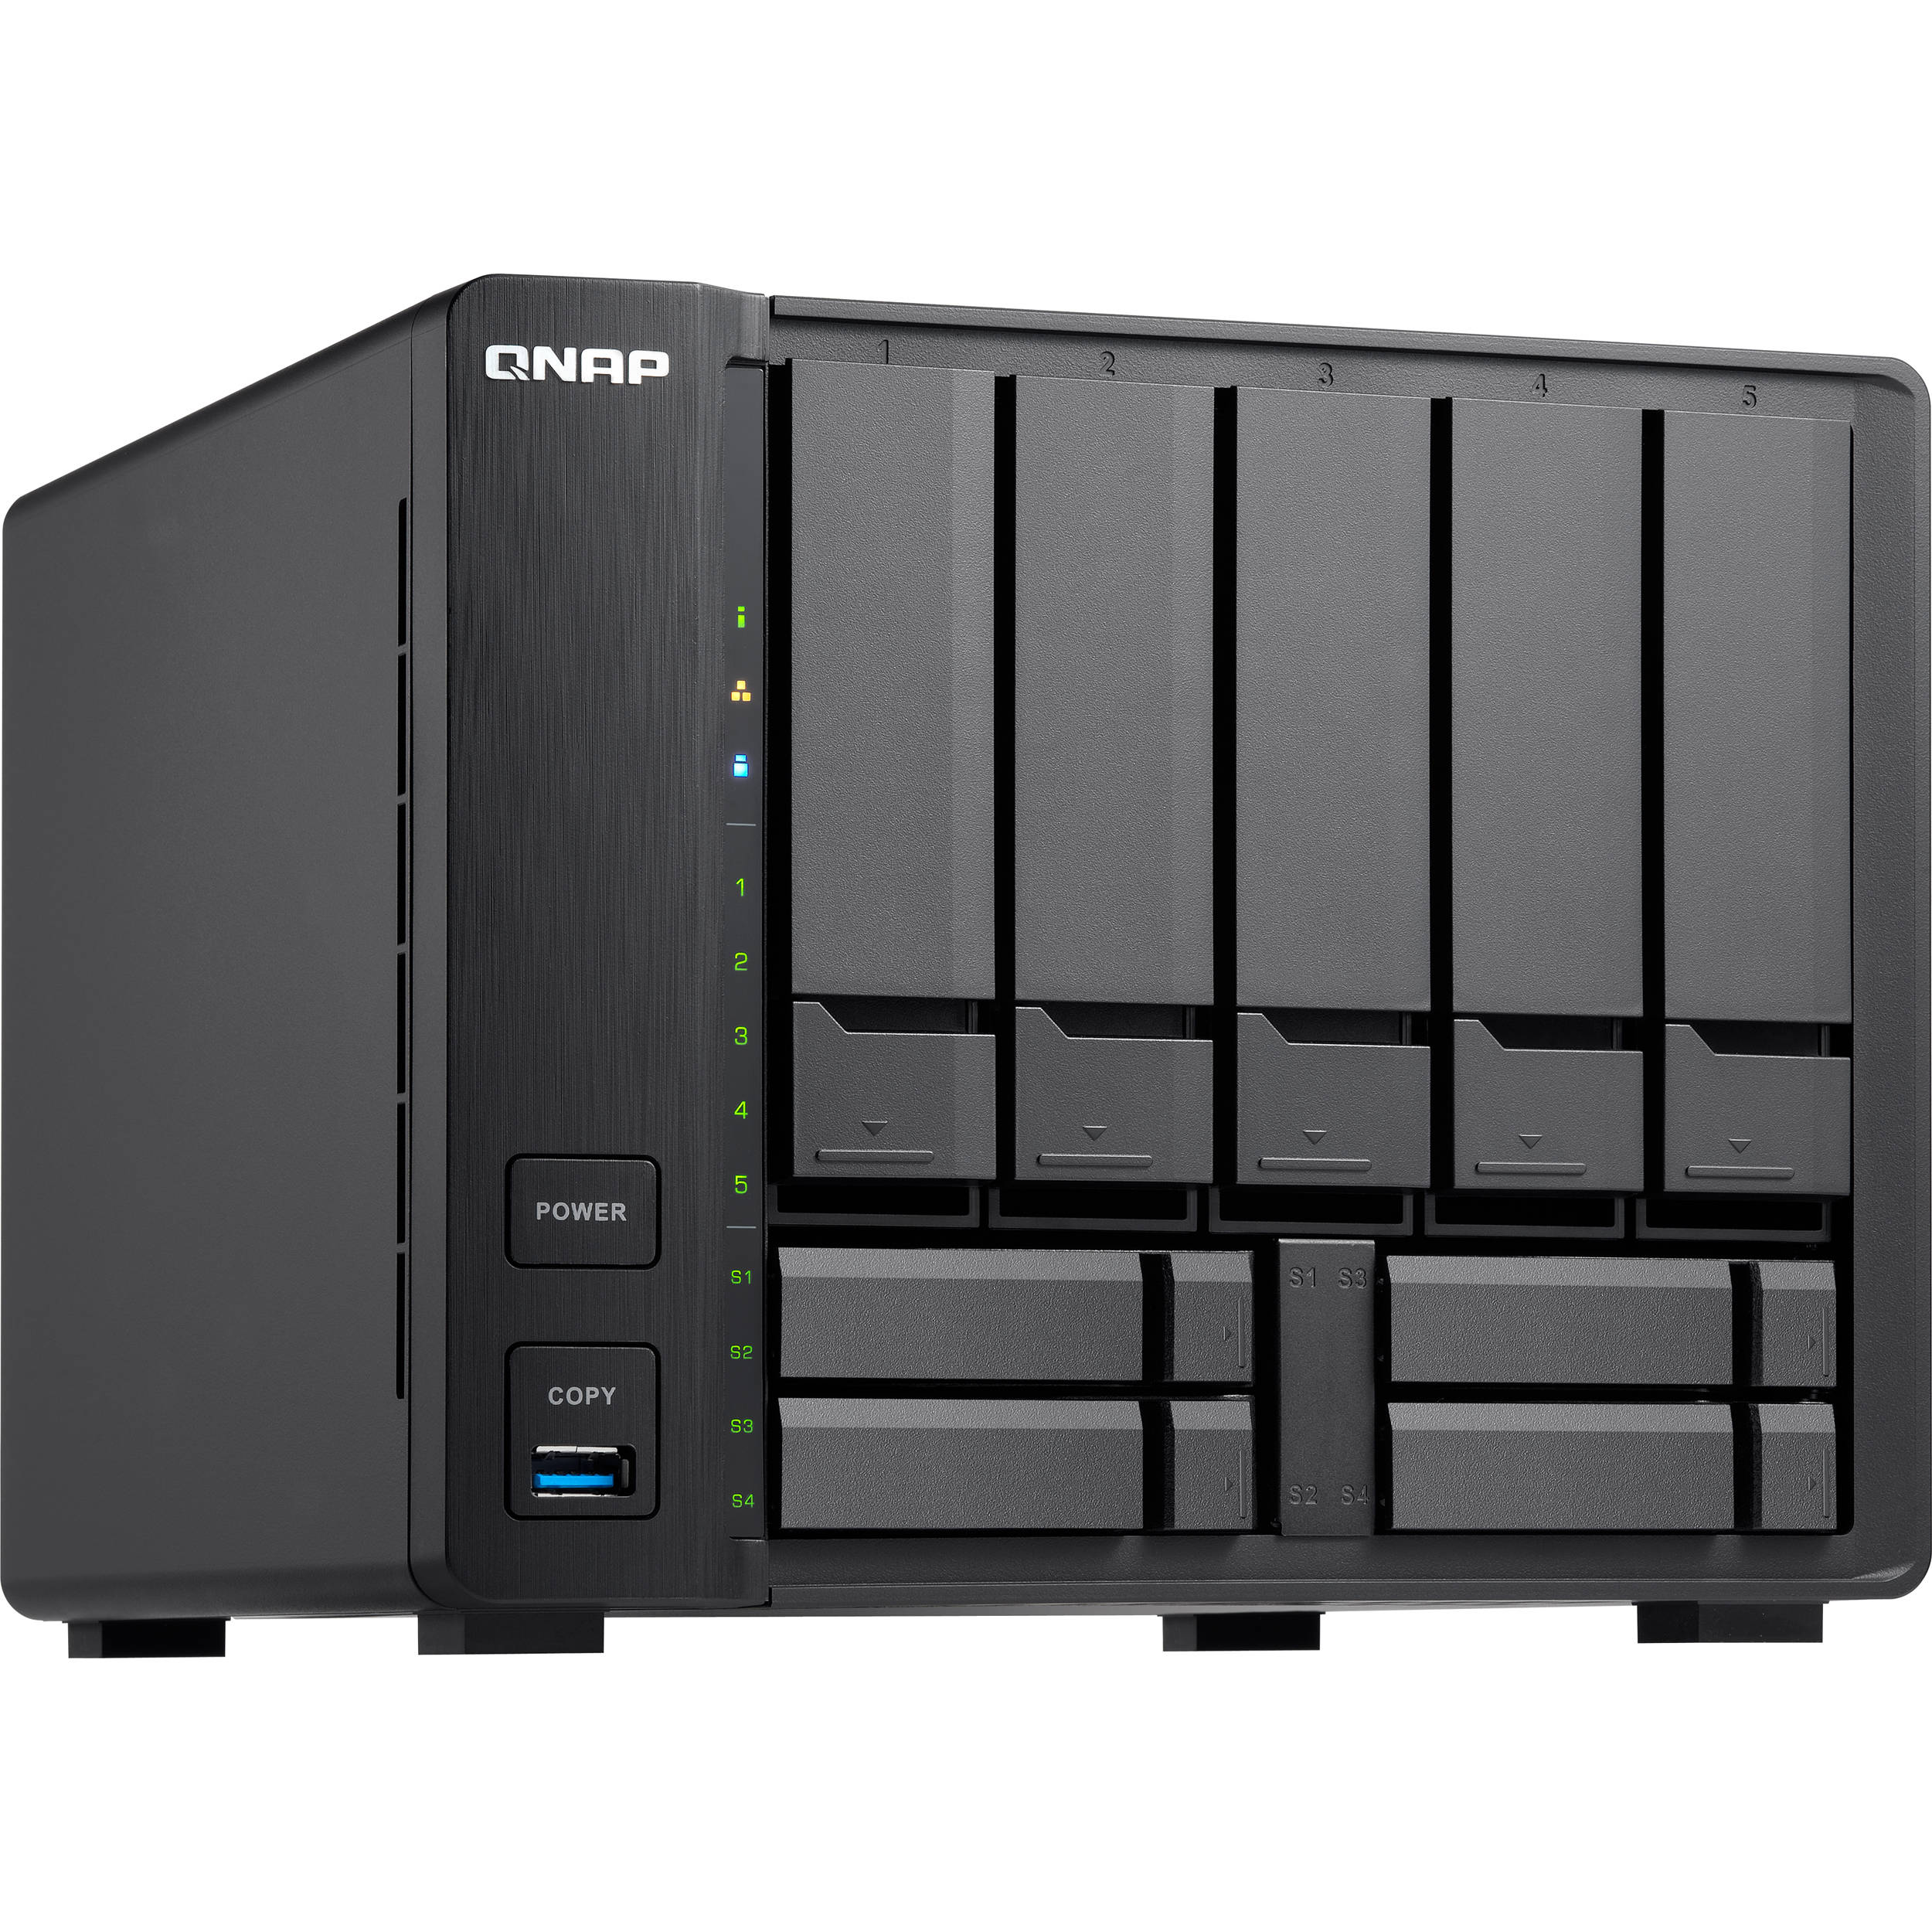 QNAP TS-963X 9-Bay NAS Enclosure